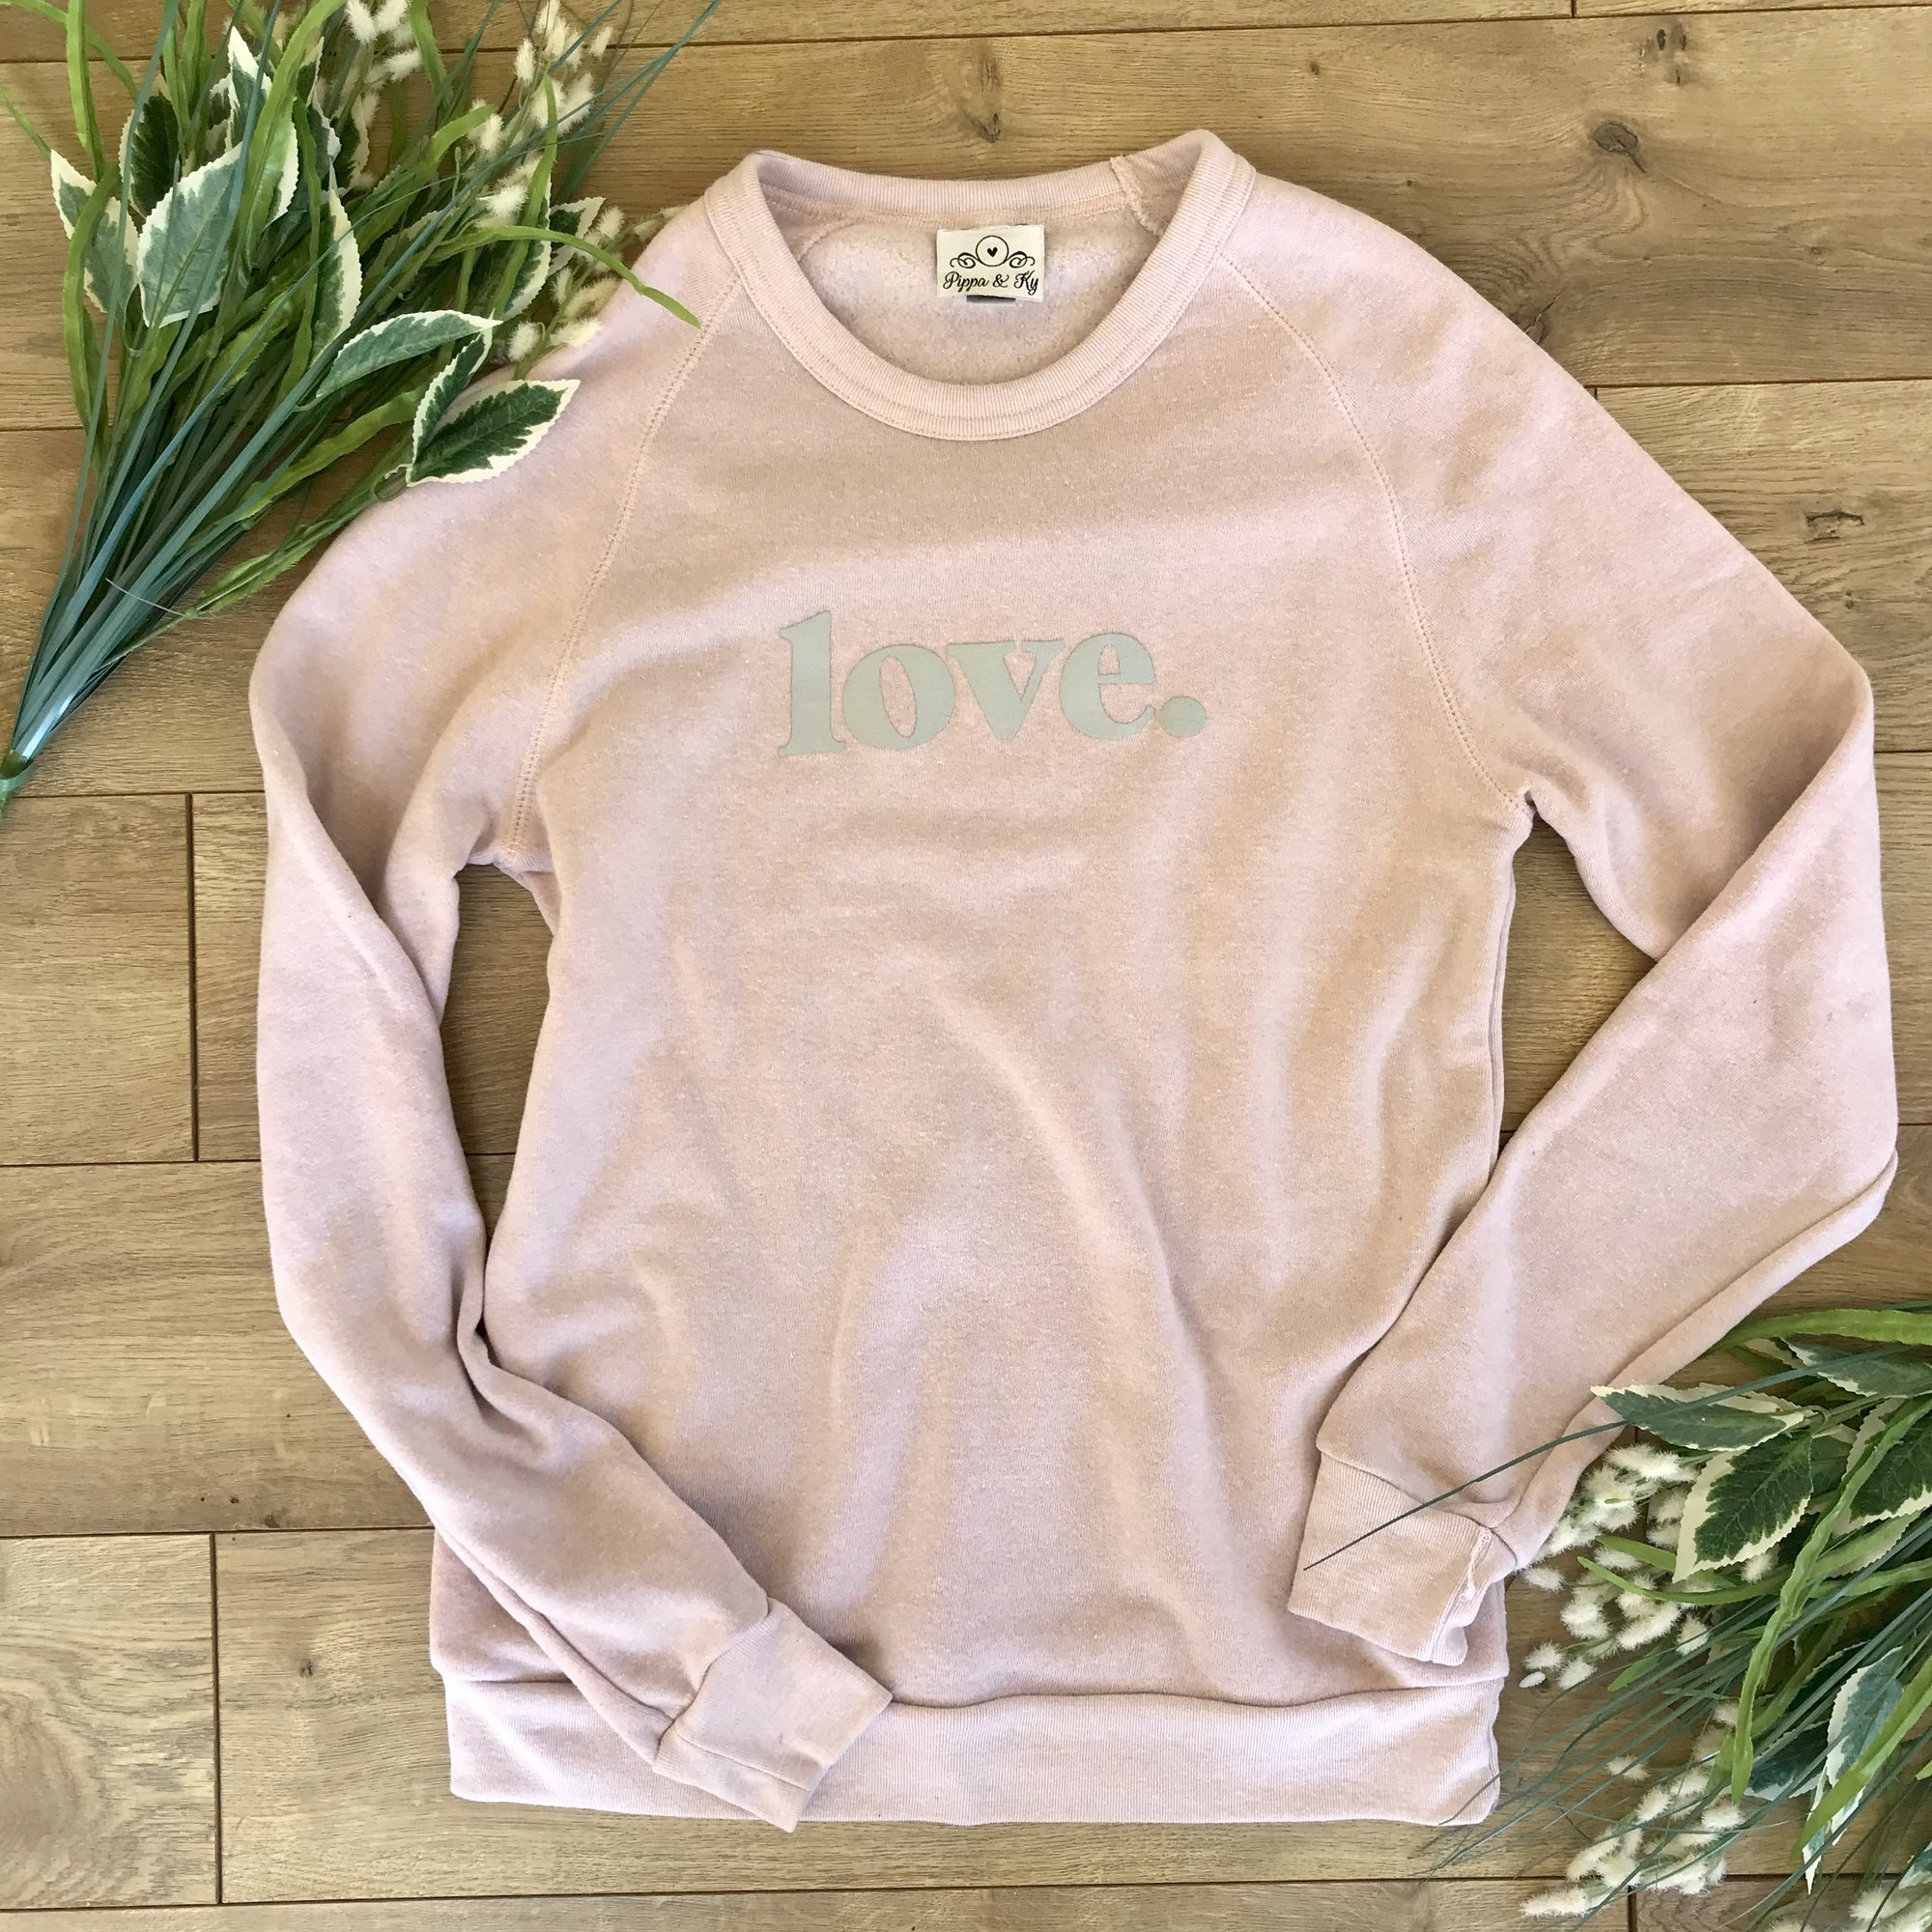 Love Pullover Sweatshirt Light Pink - Sweatshirt